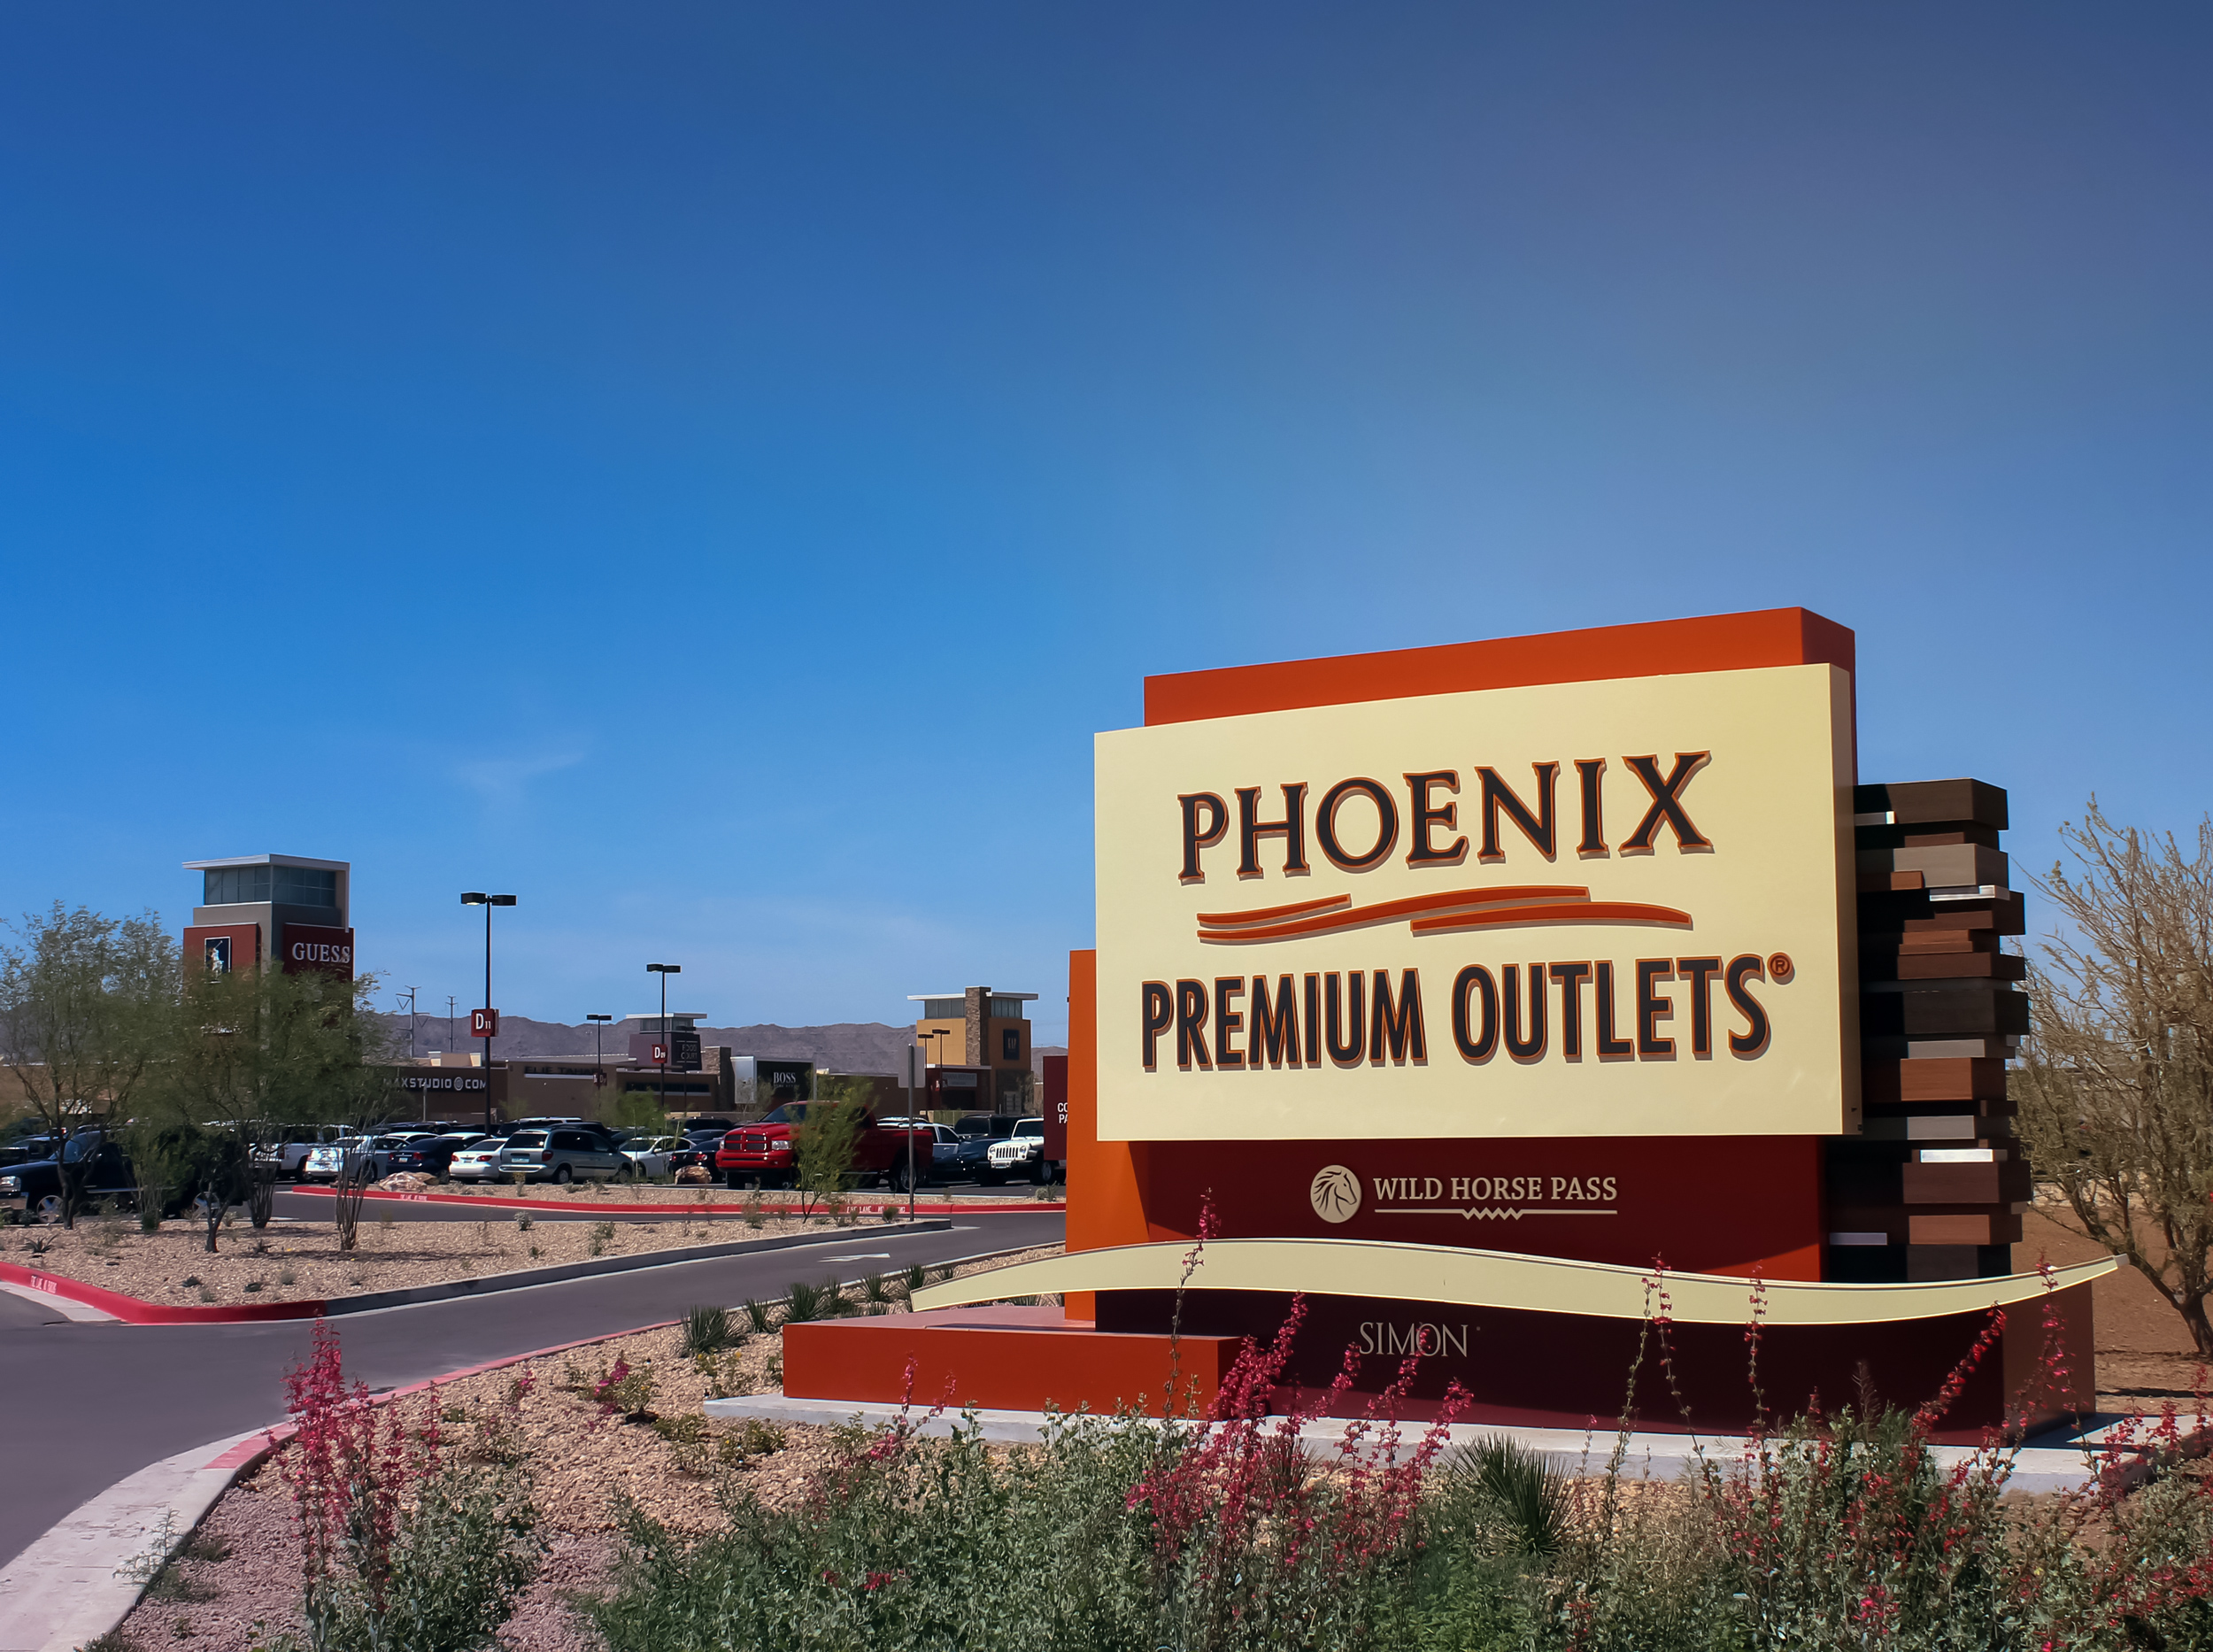 A single sided illuminated monument directs shoppers to the outlet's entrance. The acrylic push through lettering creates glow around the aluminum panel.